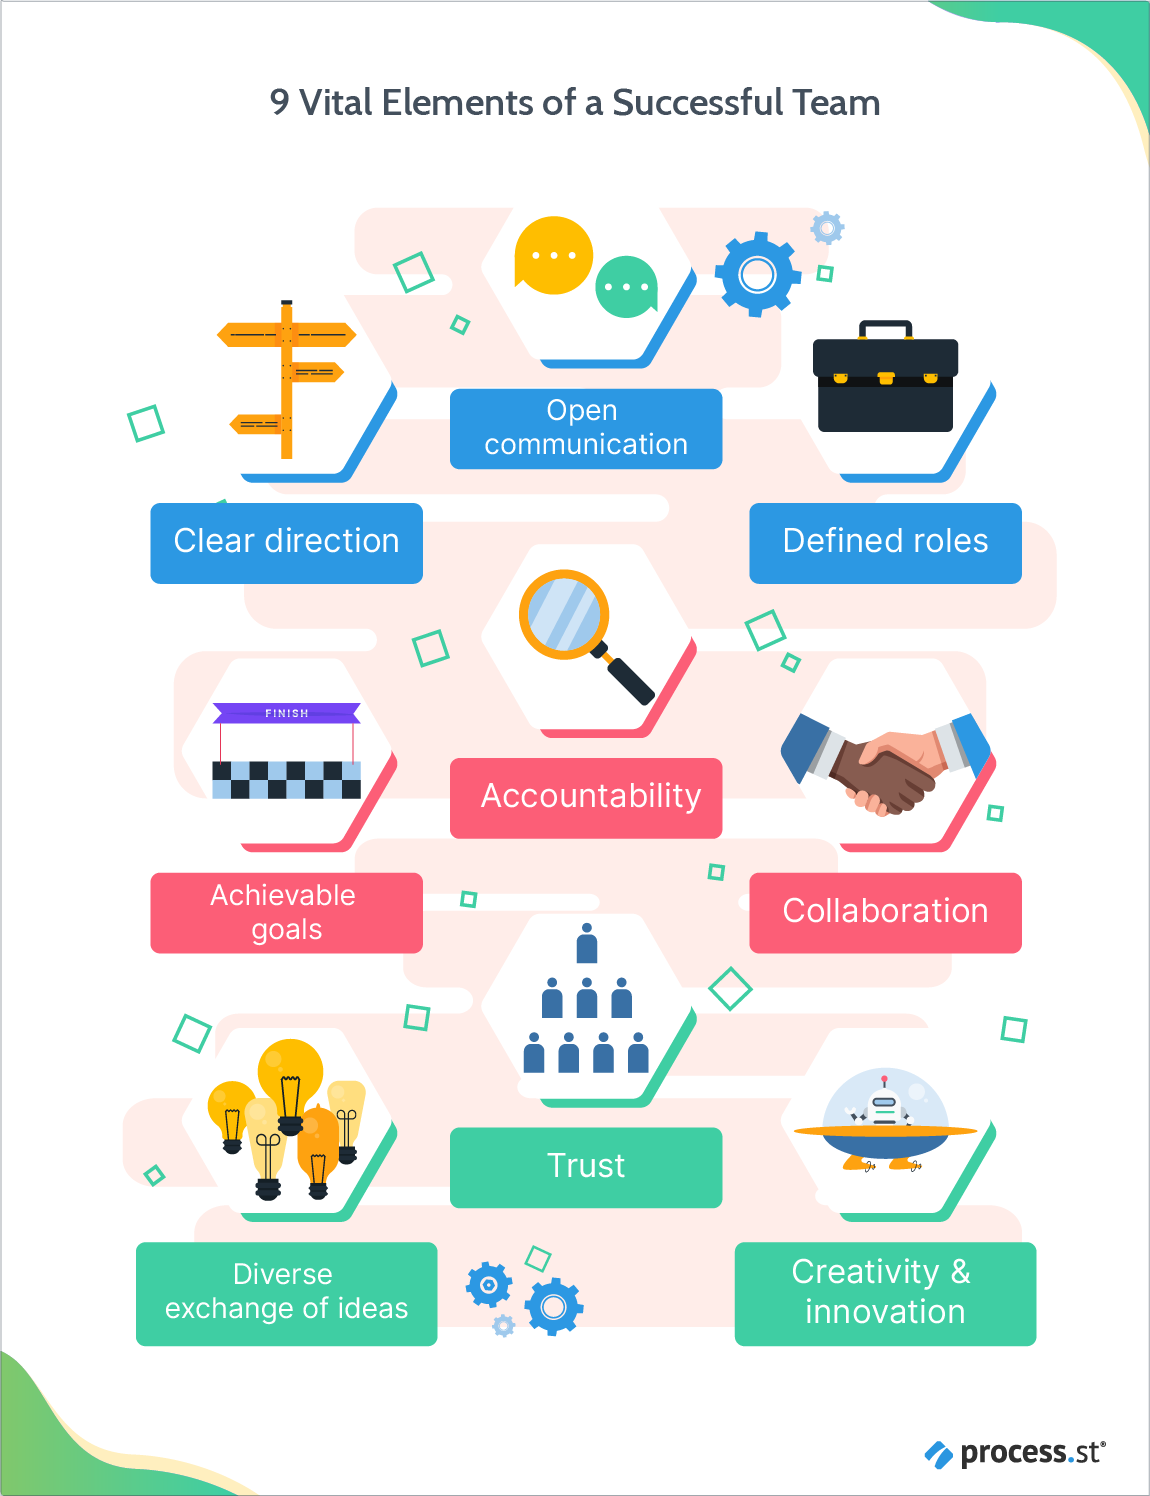 9 vital elements of a successful team